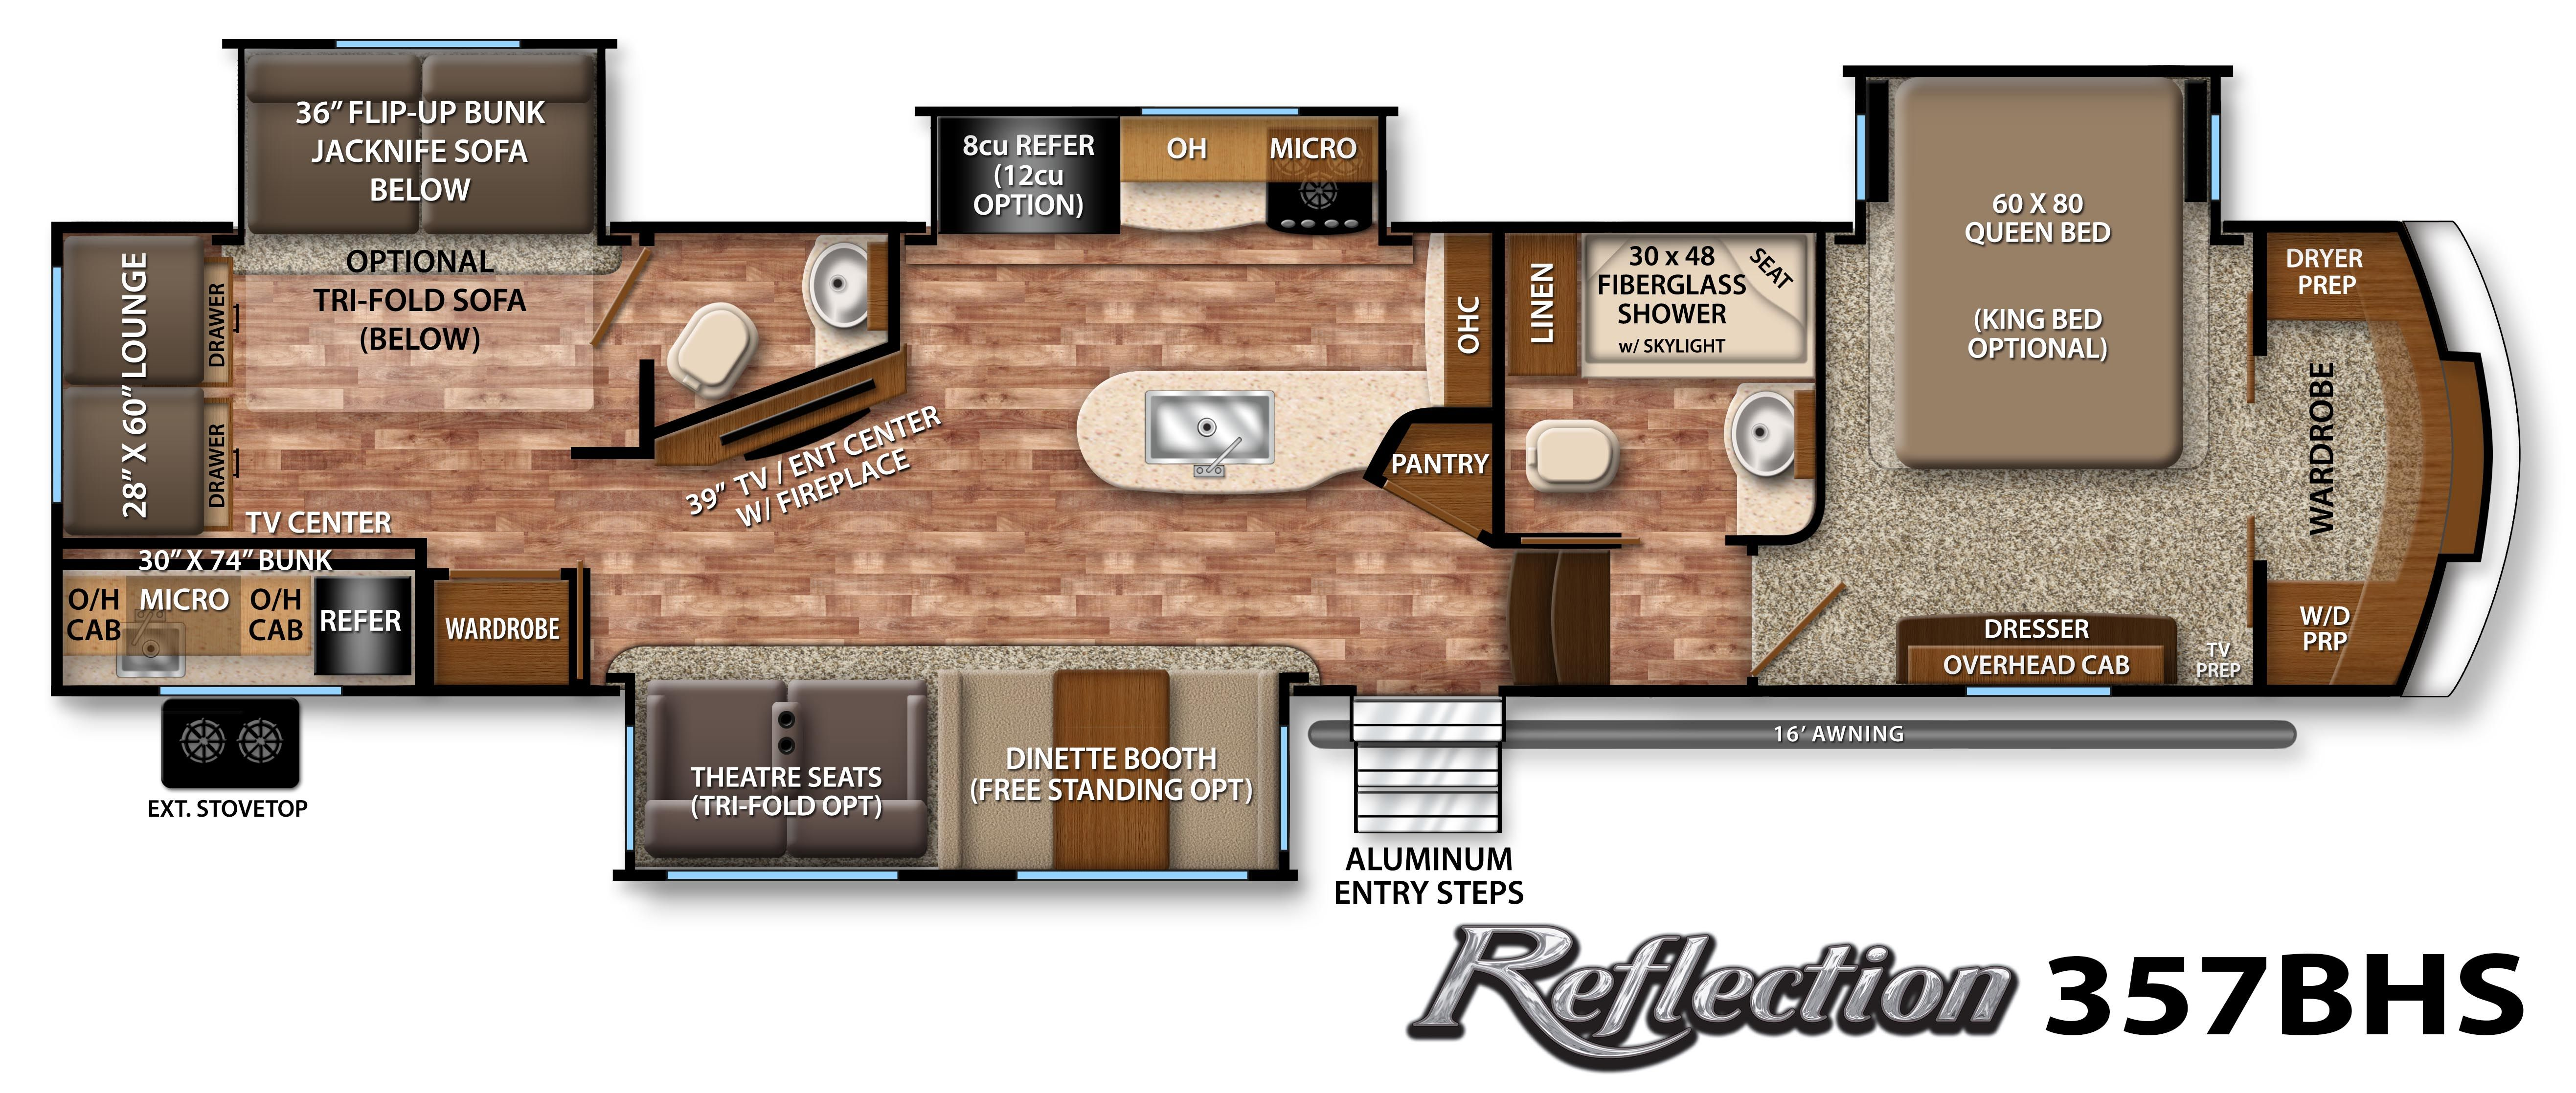 Reflection fifth wheel specifications grand design rv dream kitchen 1 too long